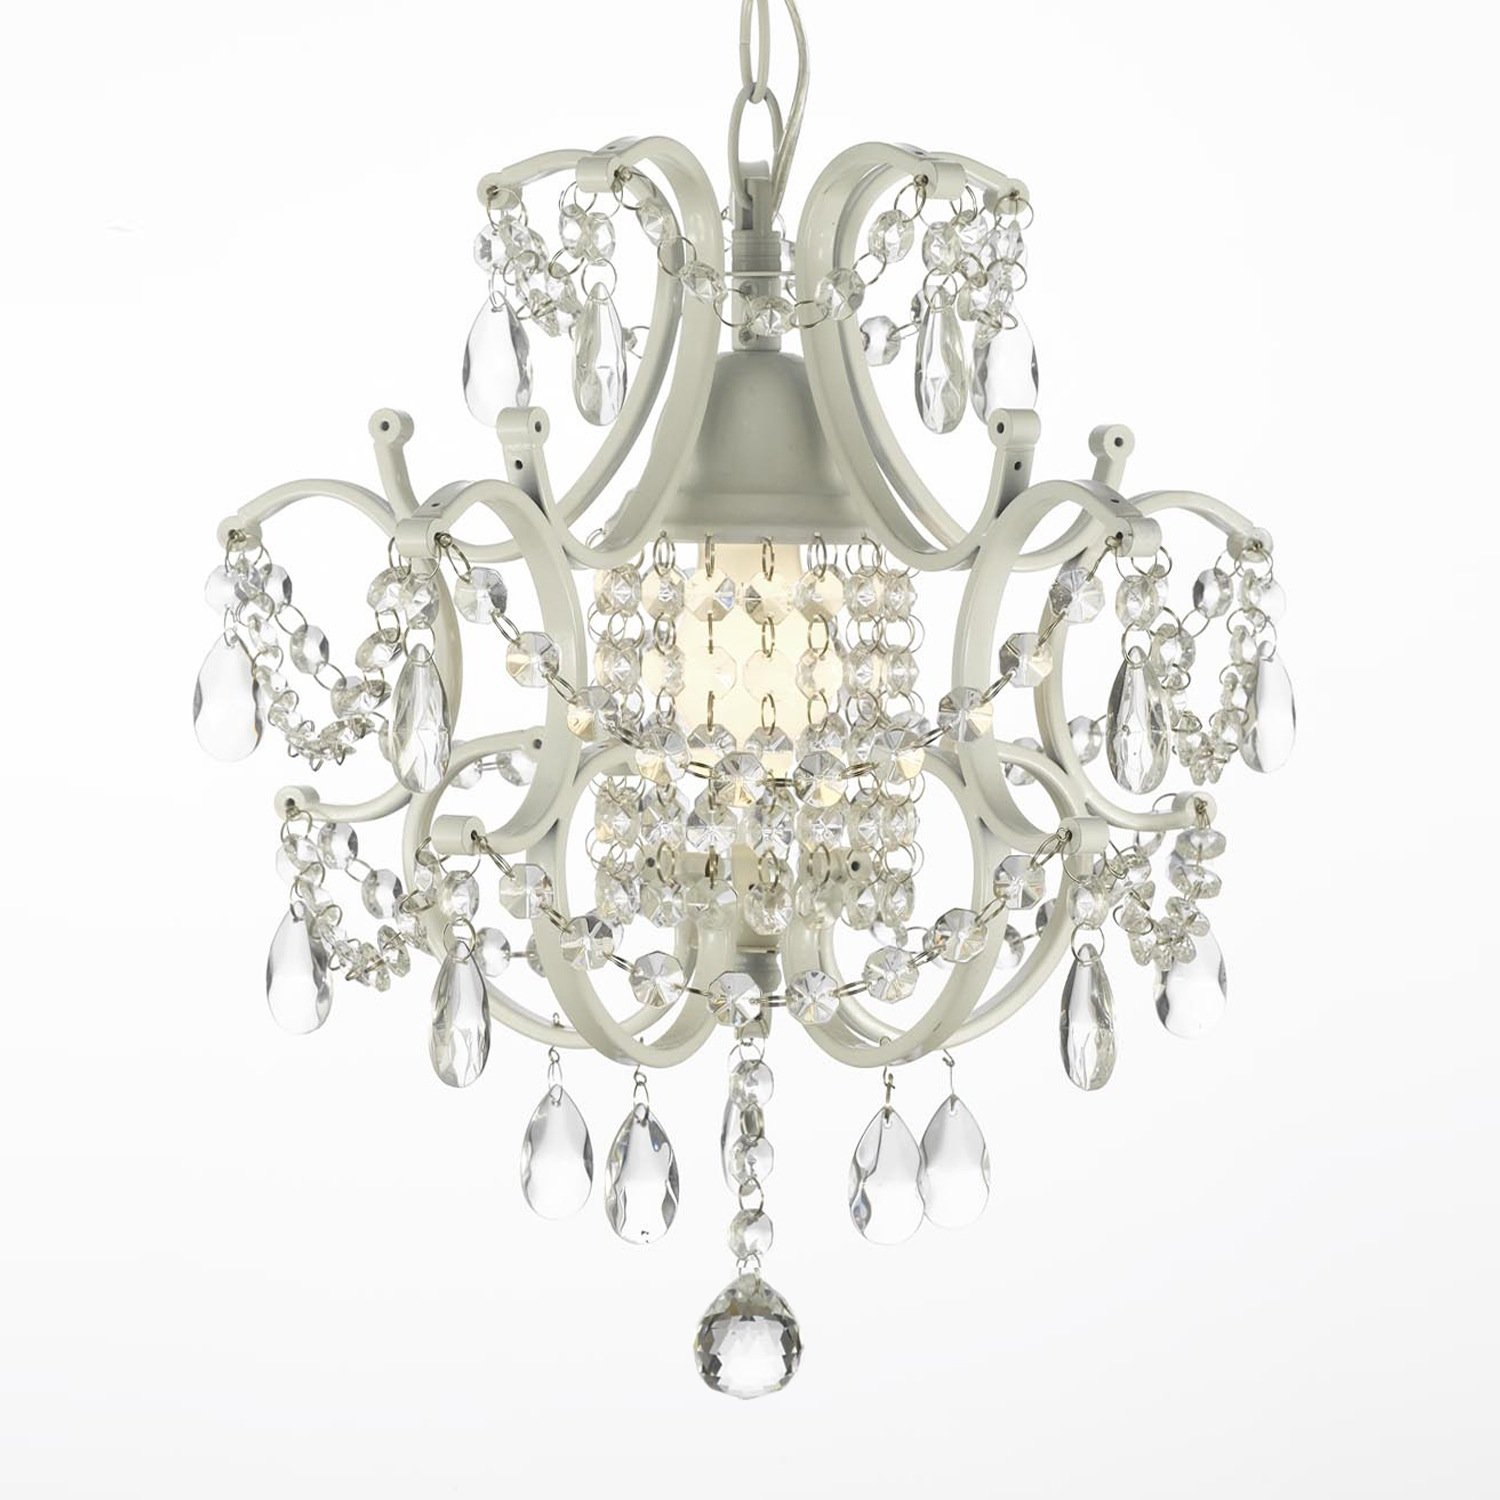 Wrought Iron Crystal Chandelier Lighting Country French White, One Light, Ceiling Fixture Swag Plug in Kit w/14' Feet of Hanging Chain Wire Plugin